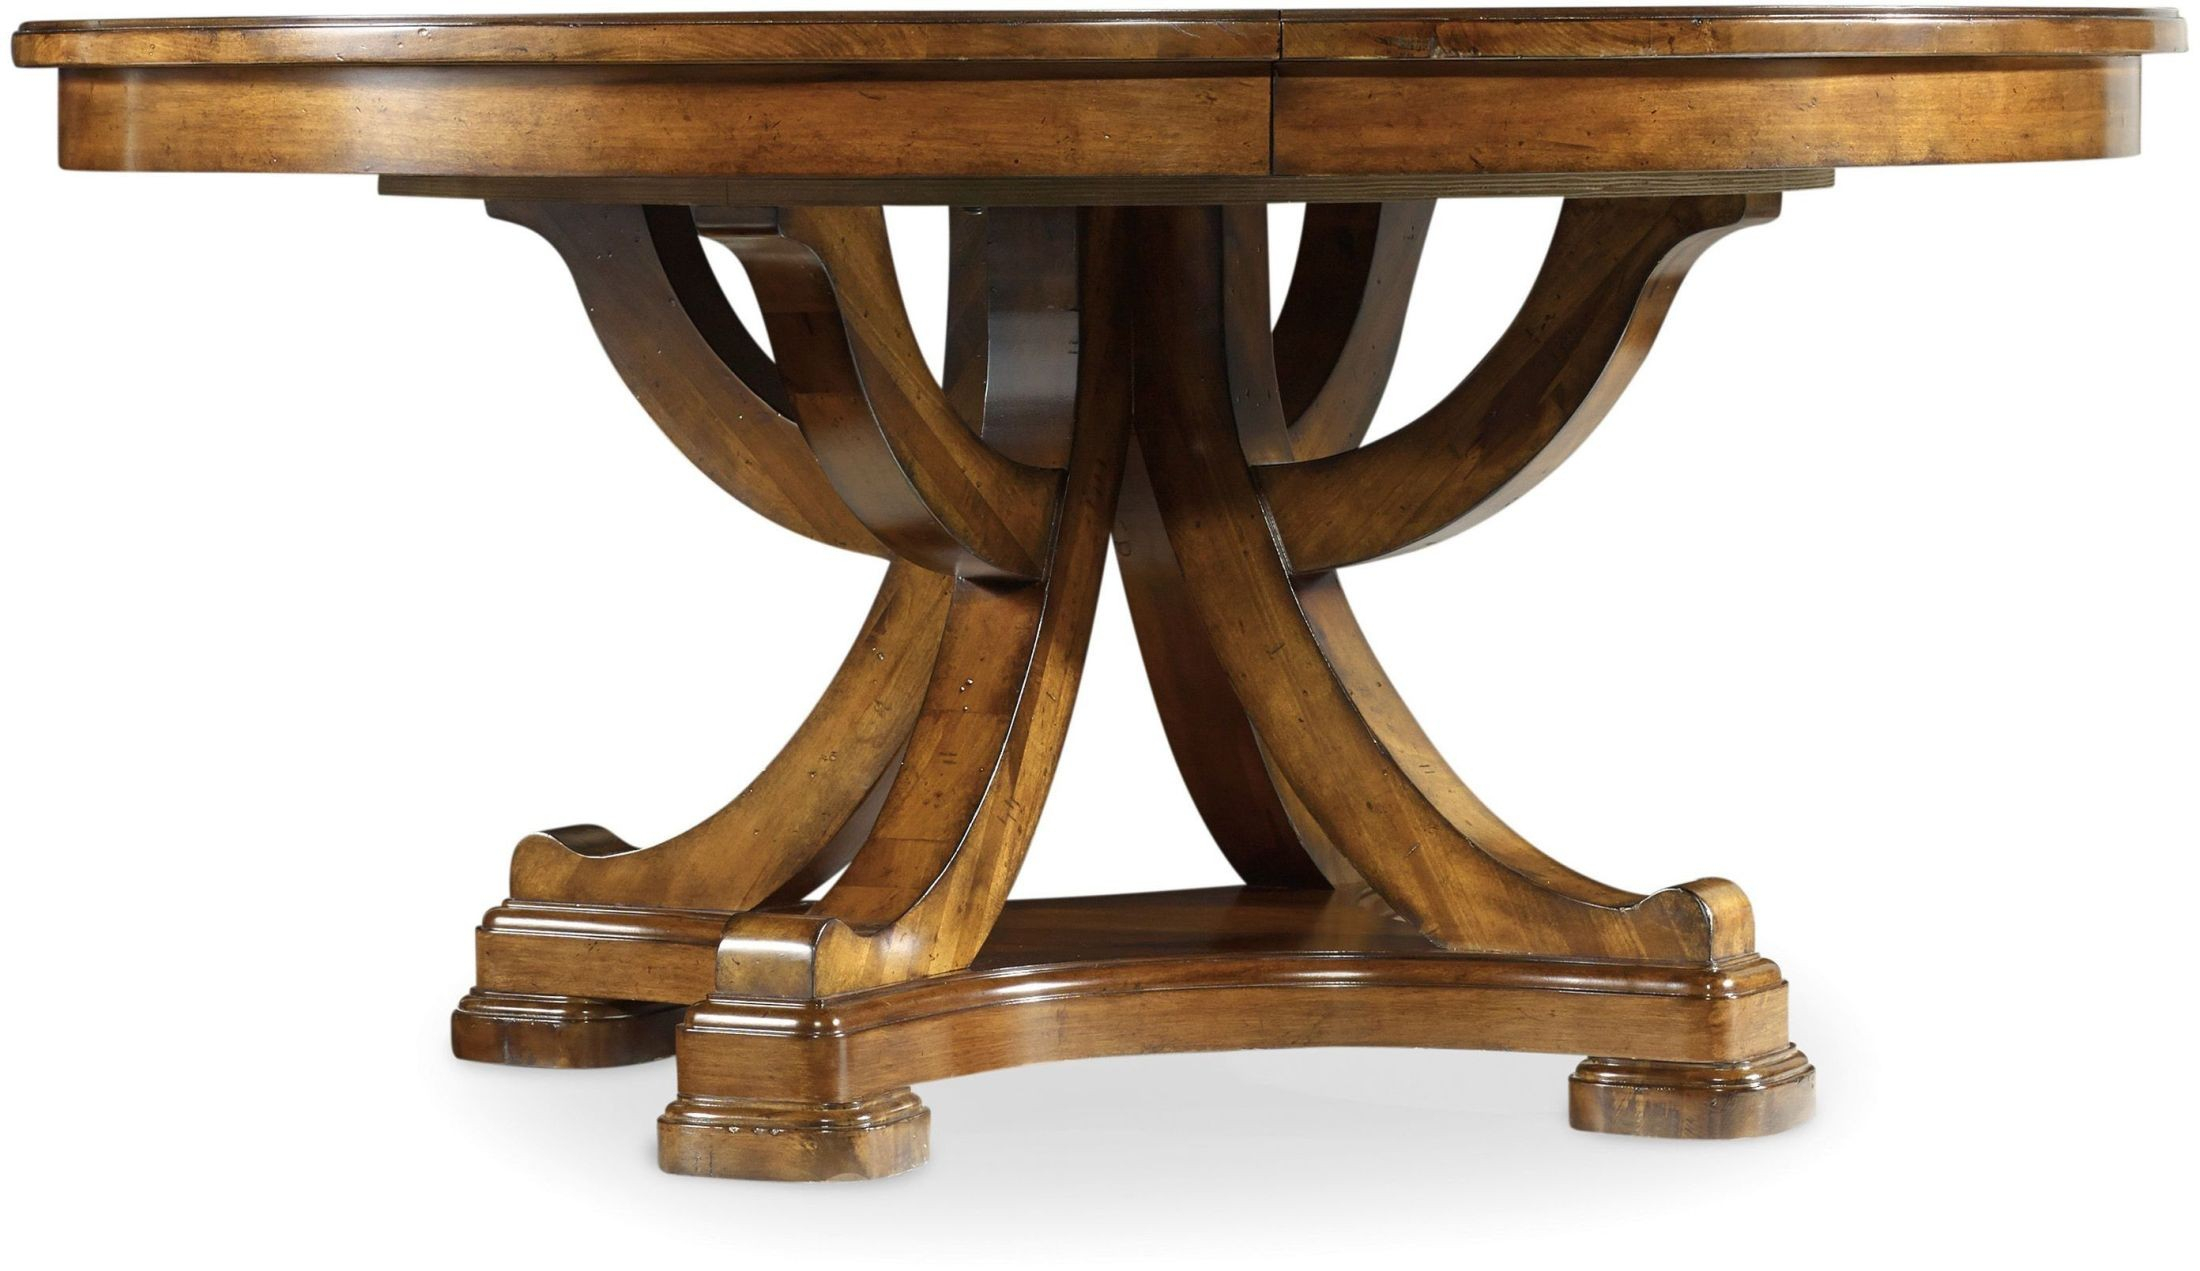 Tynecastle Brown Round Pedestal Extendable Dining Table Within Latest Sevinc Pedestal Dining Tables (View 14 of 15)